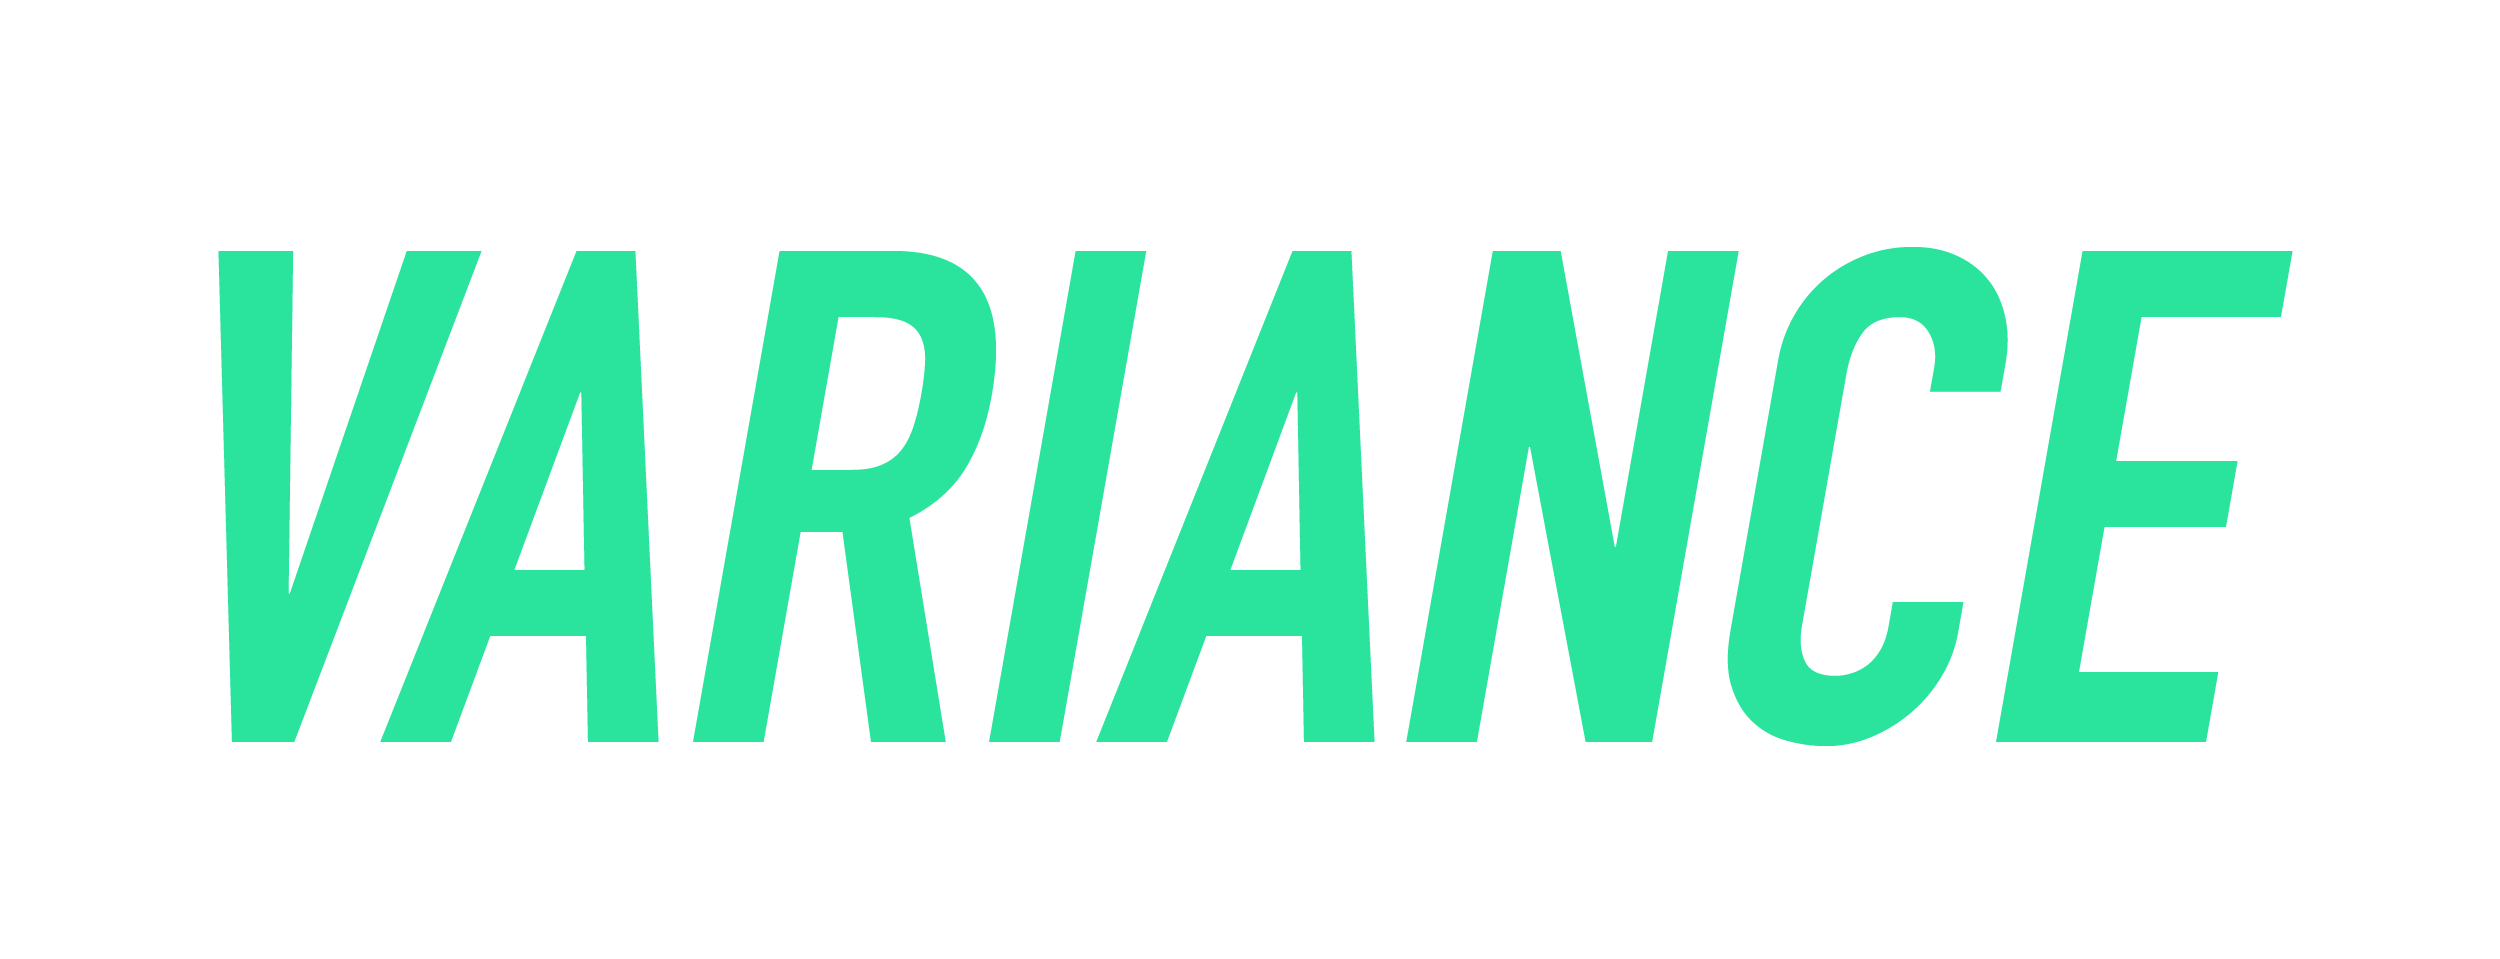 variance-logo-solo.png